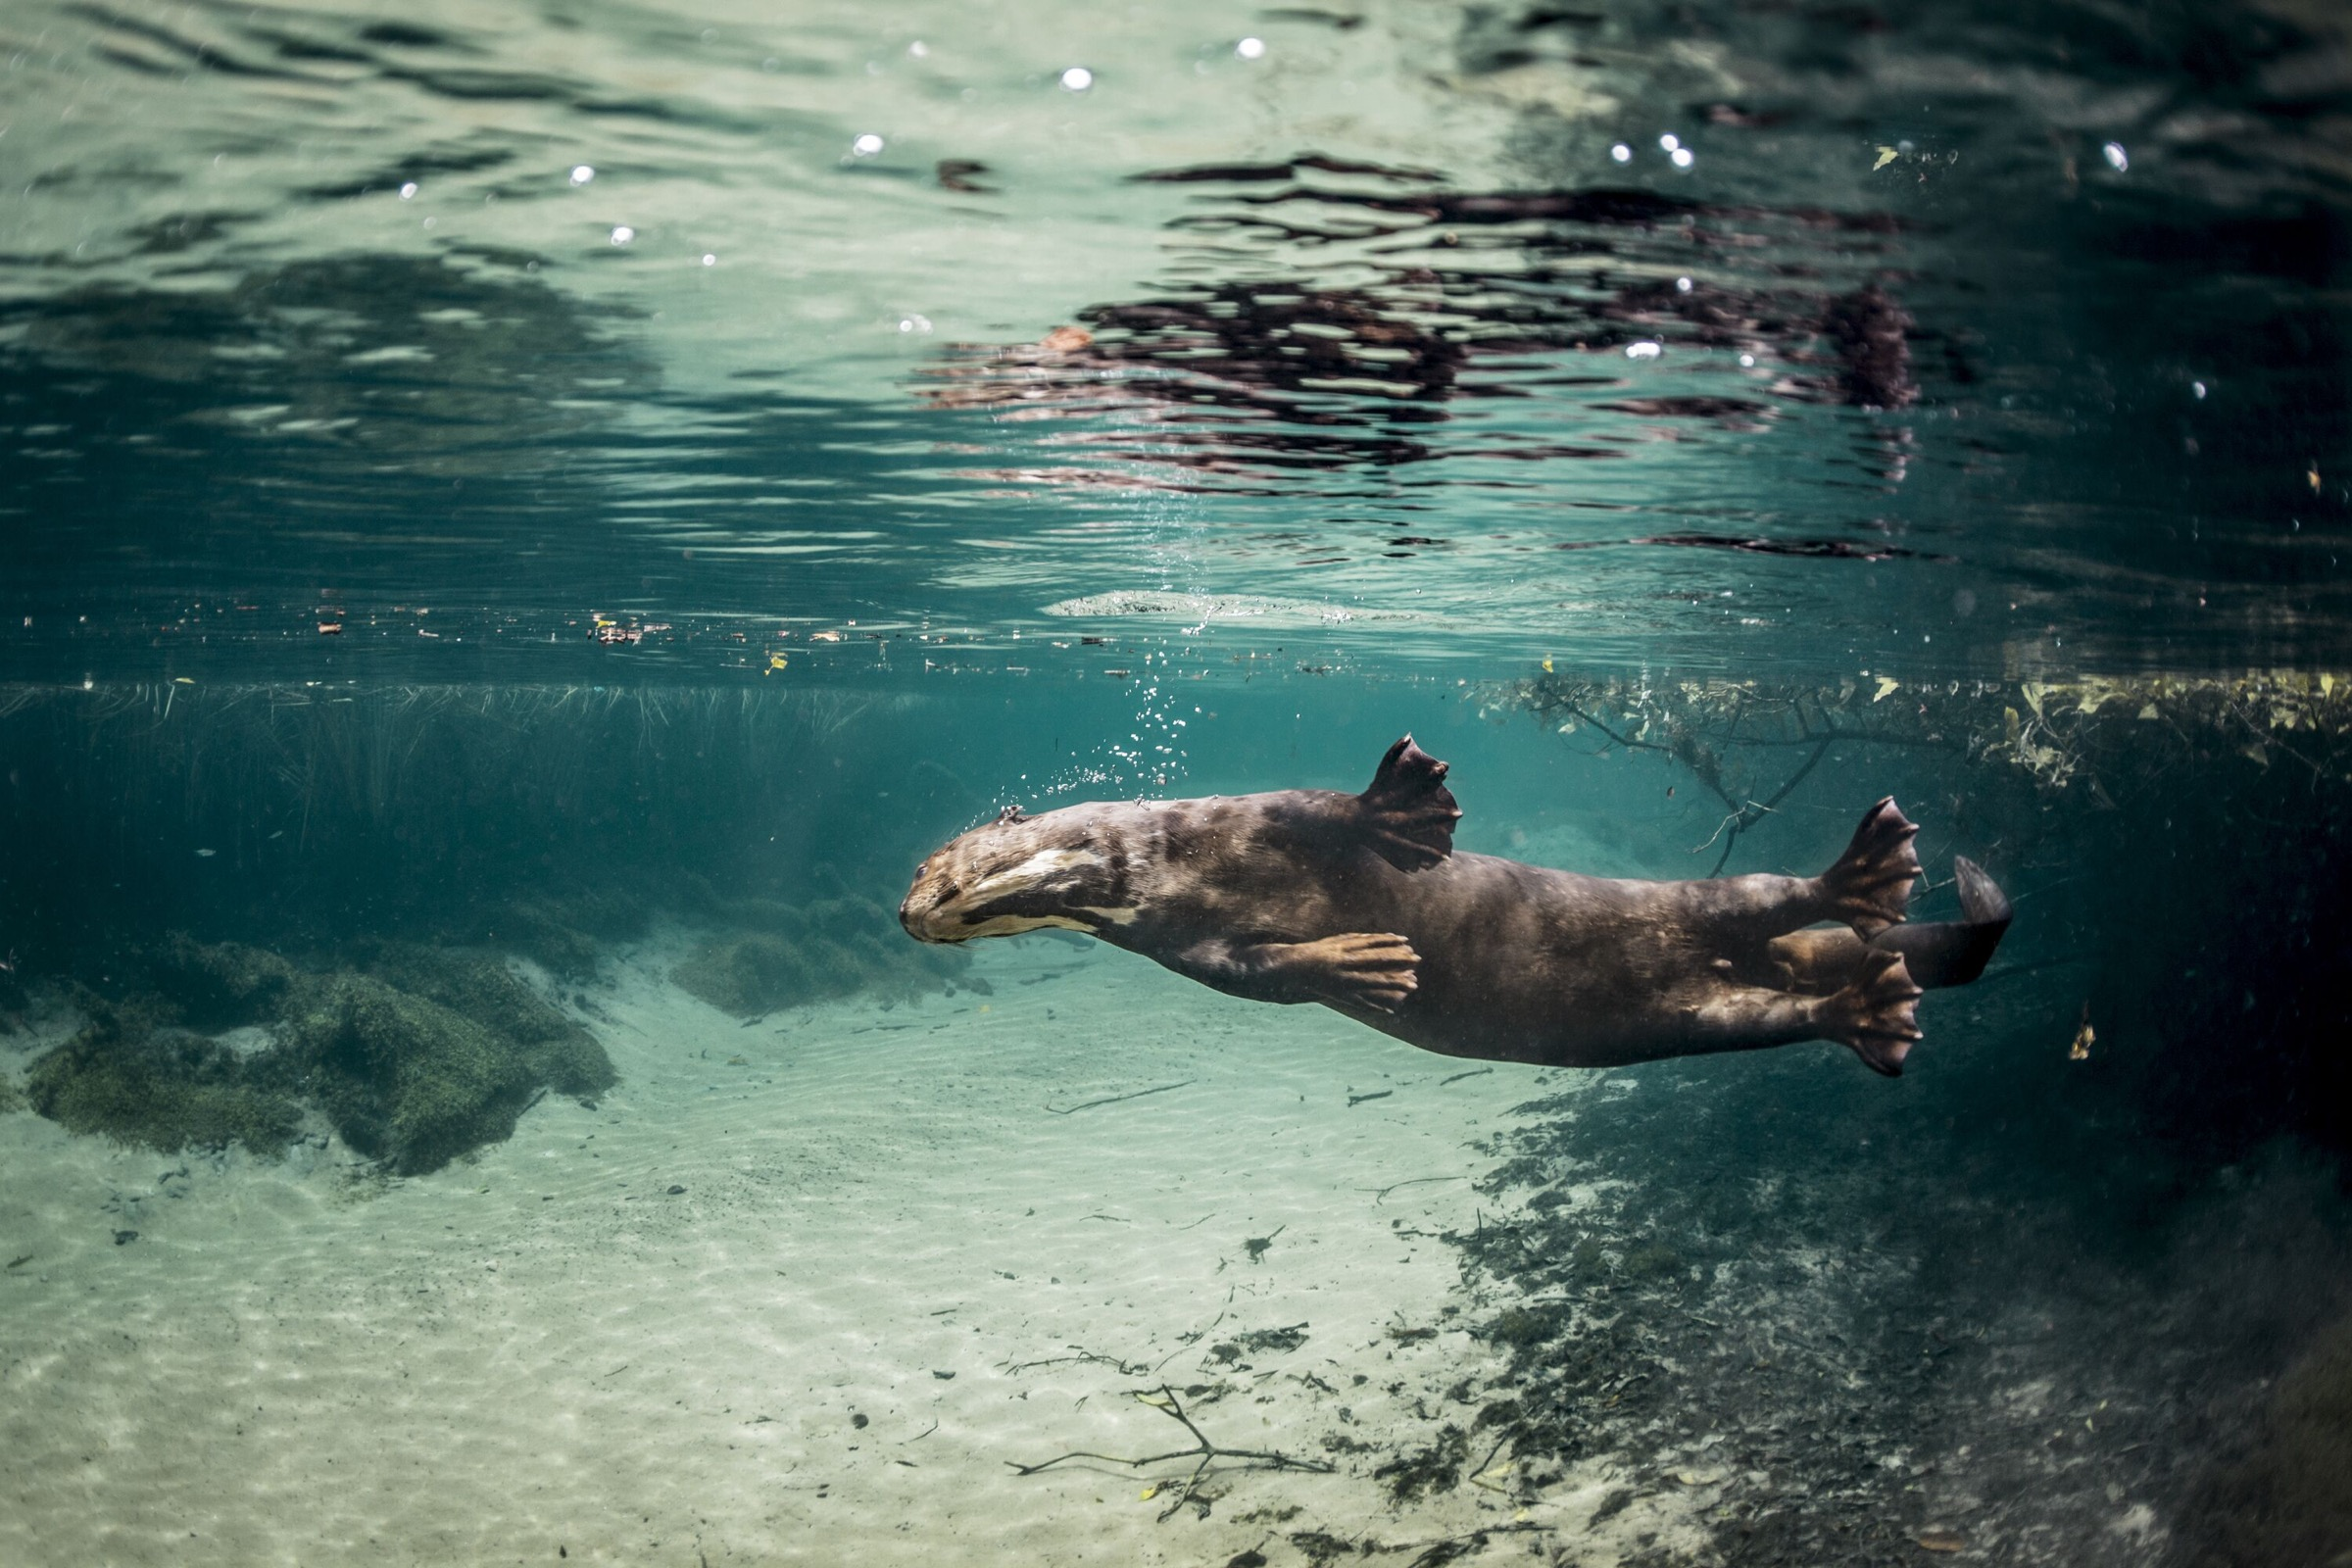 With their large webbed feet, giant river otters glide effortlessly through the Brazilian rivers outside the town of Bonito.